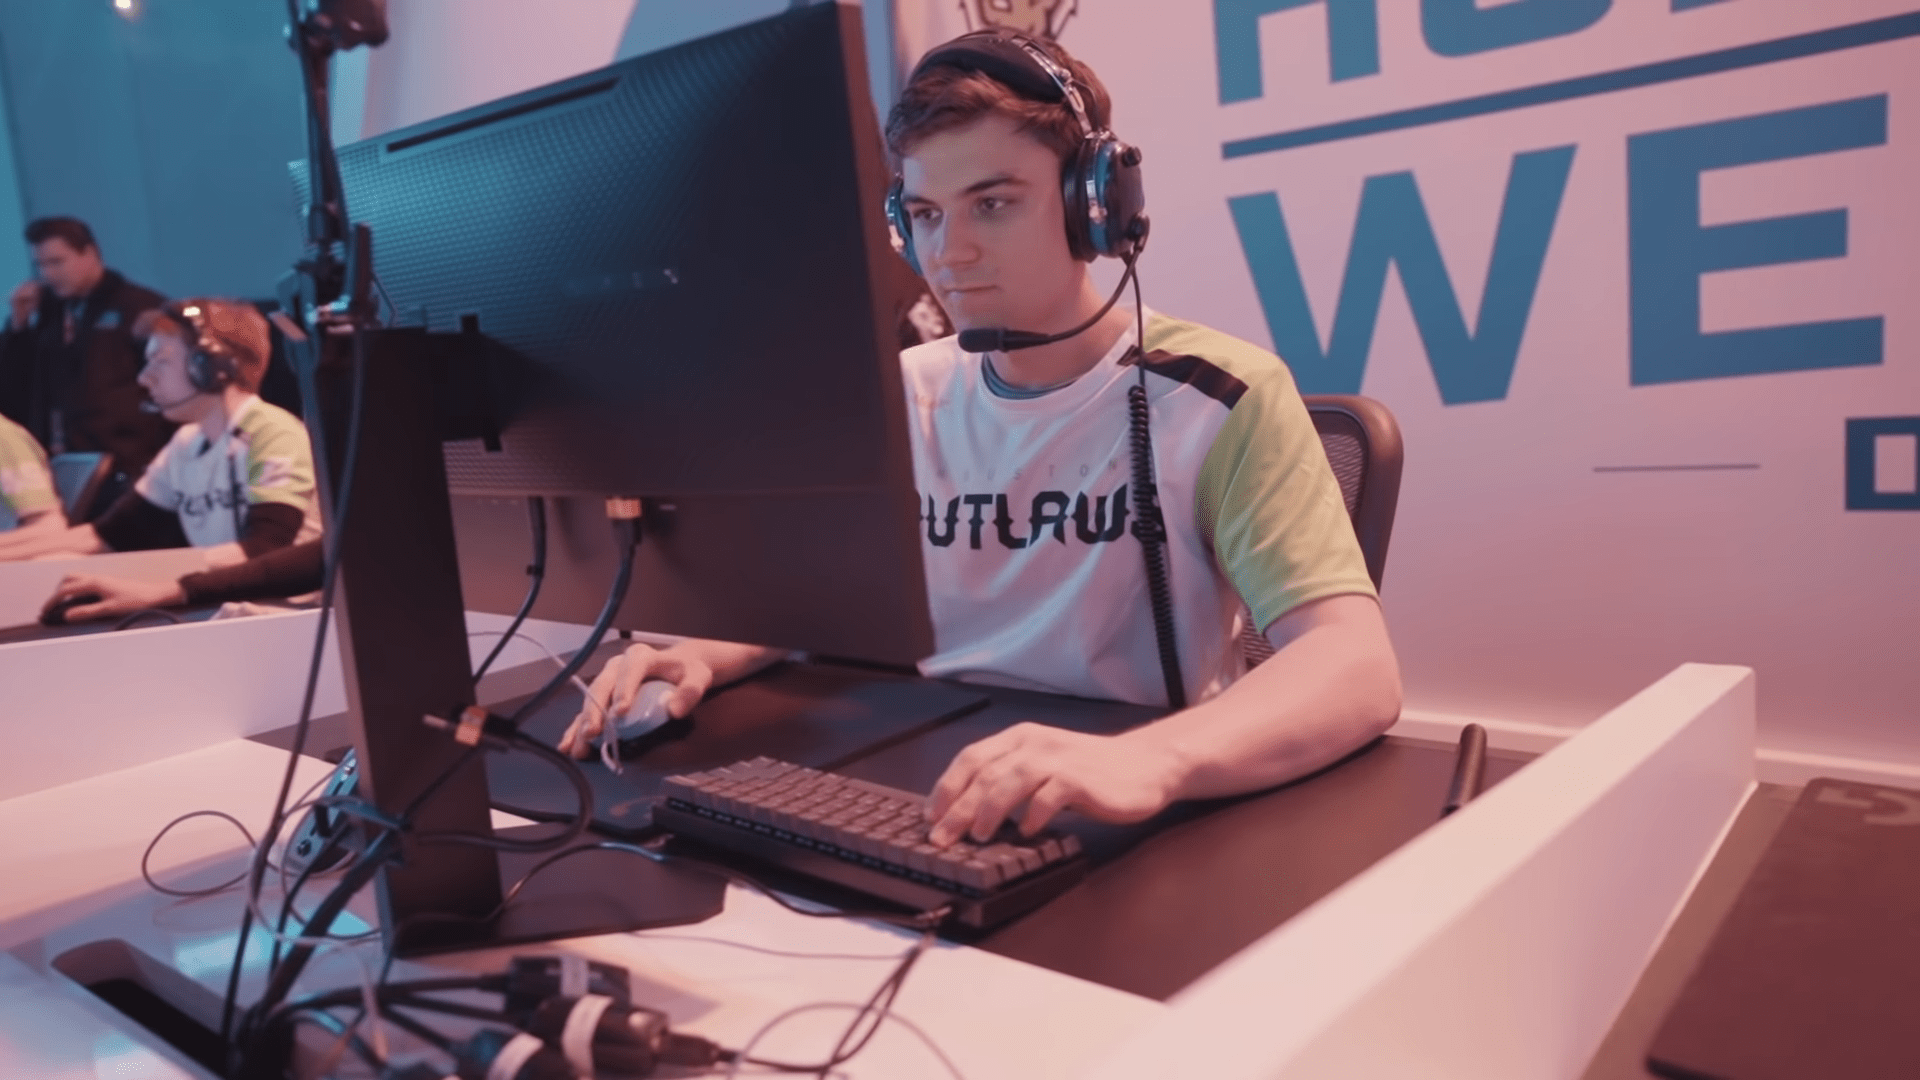 Immortal Gaming Club Forgoes The Houston Outlaws To Beasley Media Group In An Estimated $35M Deal